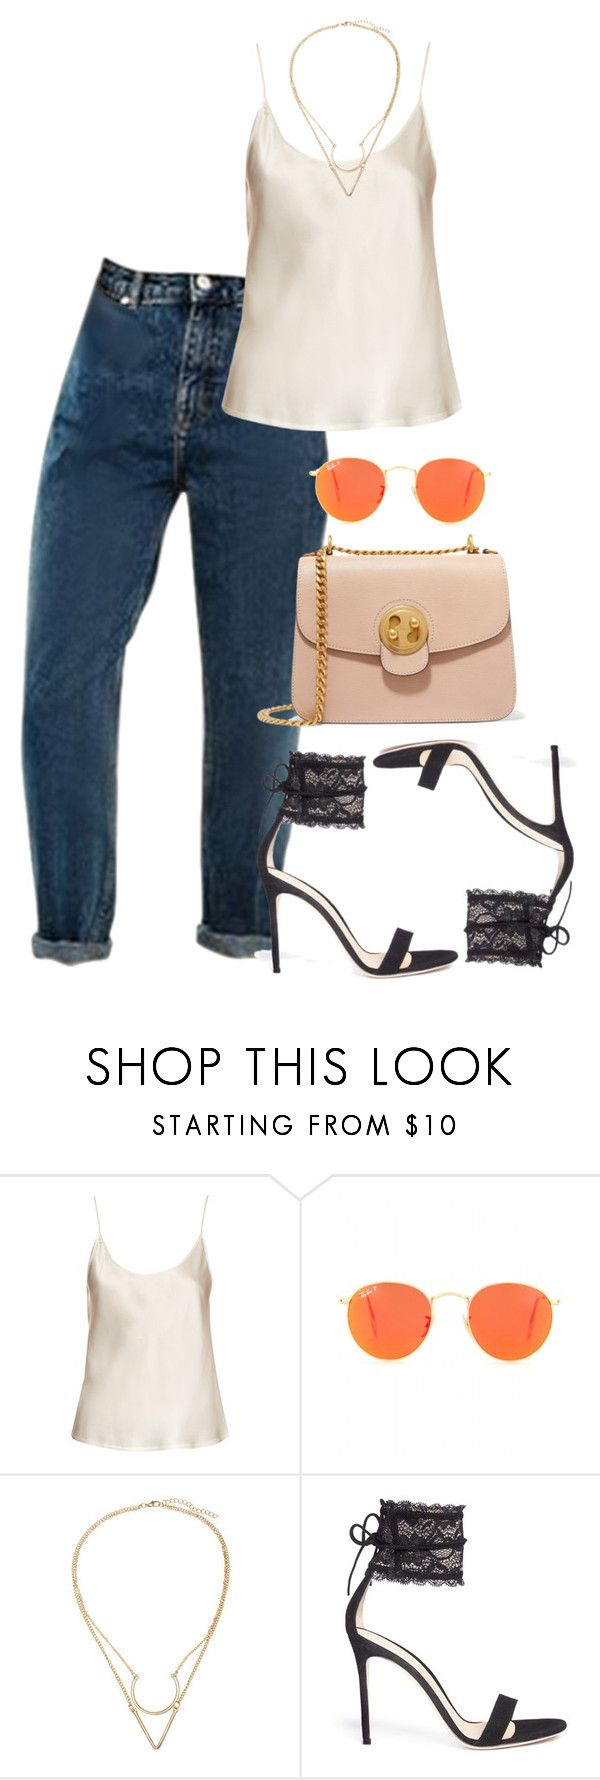 """""""Sun"""" by fashion-is-my-passion-14 on Polyvore featuring La Perla, Ray-Ban, Gianvito Rossi and Chloé"""